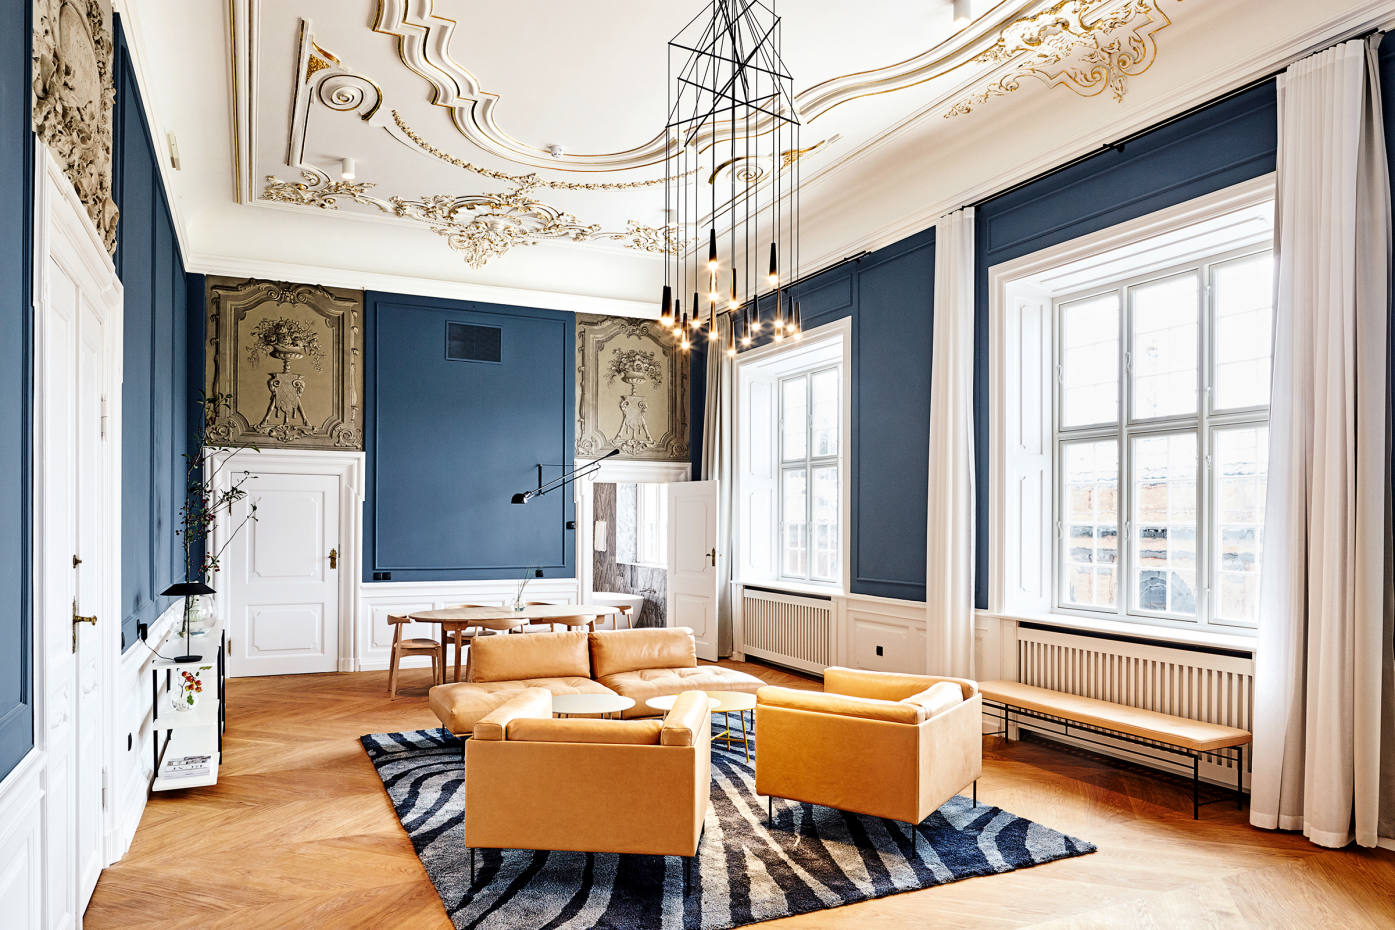 Nobis Hotel Copenhagen is set in the former Royal DanishAcademy ofMusic and retains many of the building's stunning original features